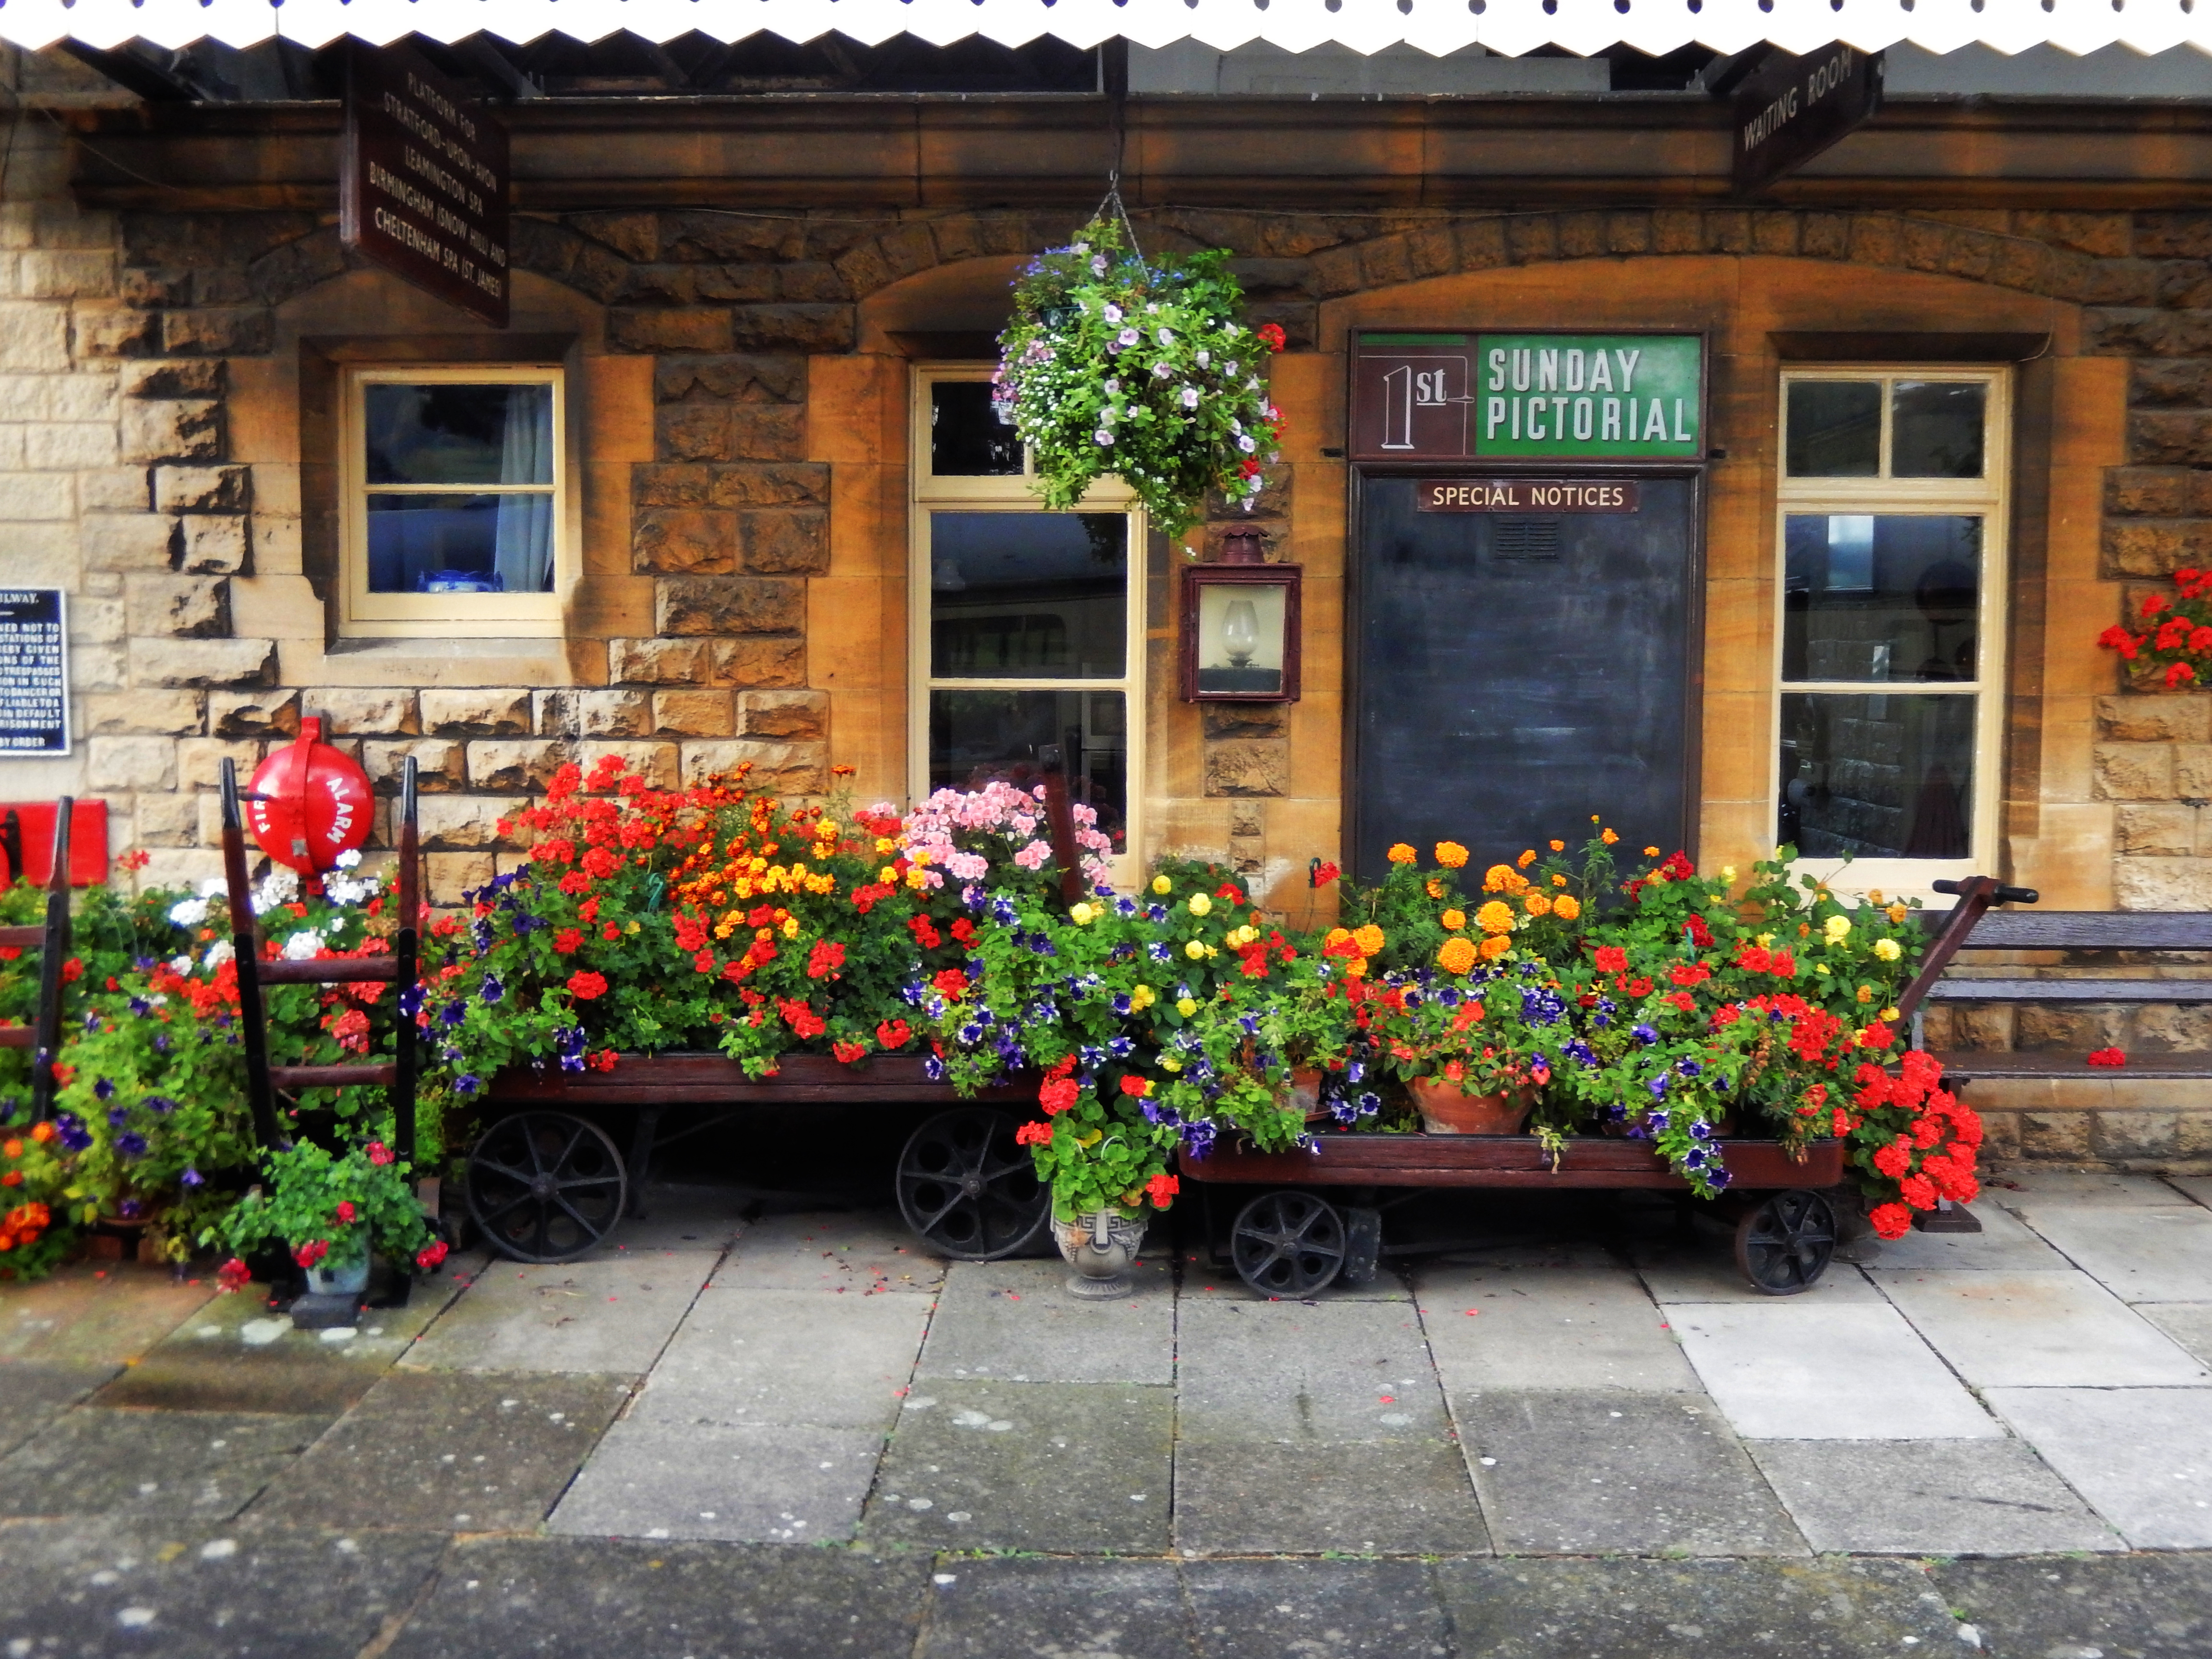 Gloucestershire Warwickshire Steam Railway - Gotherington Station Flowers - This Steam Train Stops at Hogwarts...Right!?